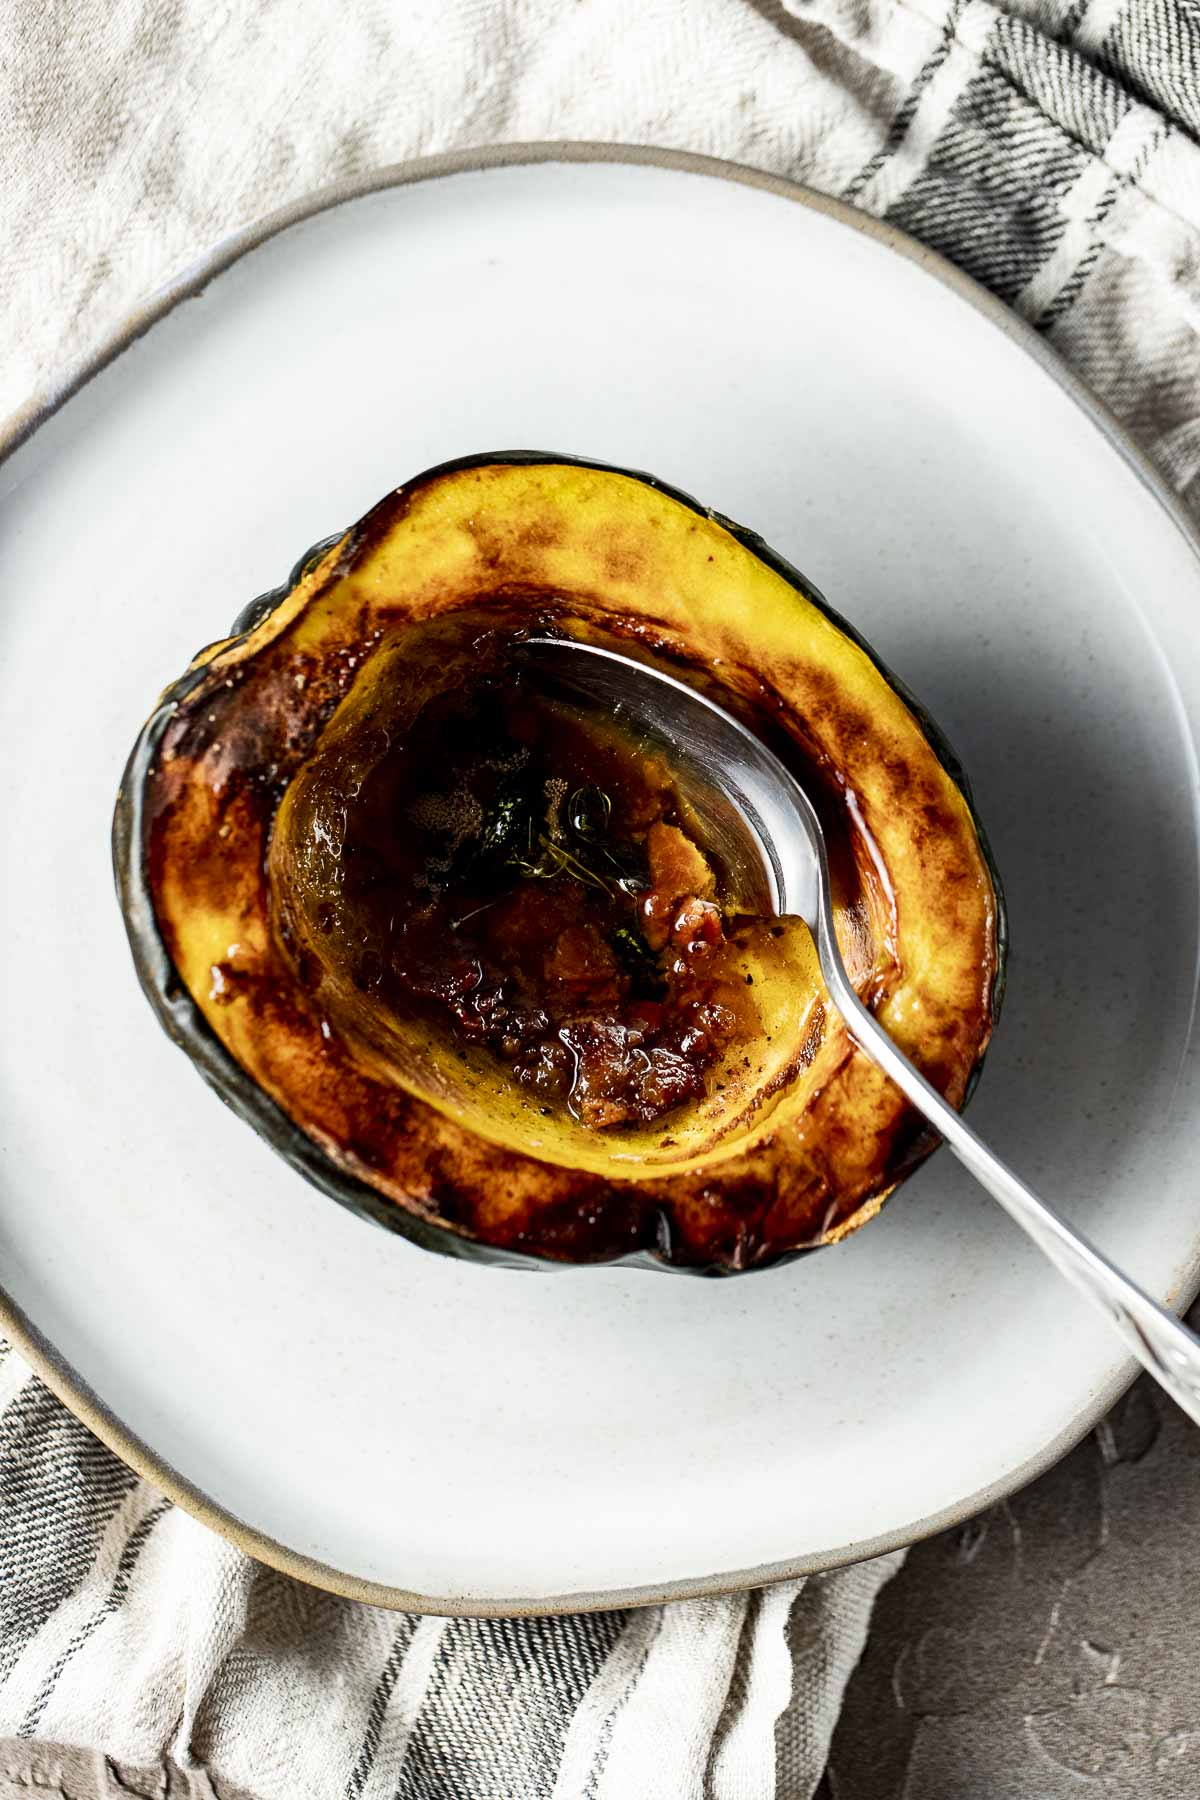 Overhead view of an air fried acorn squash half on a white plate with a spoon inserted into it.